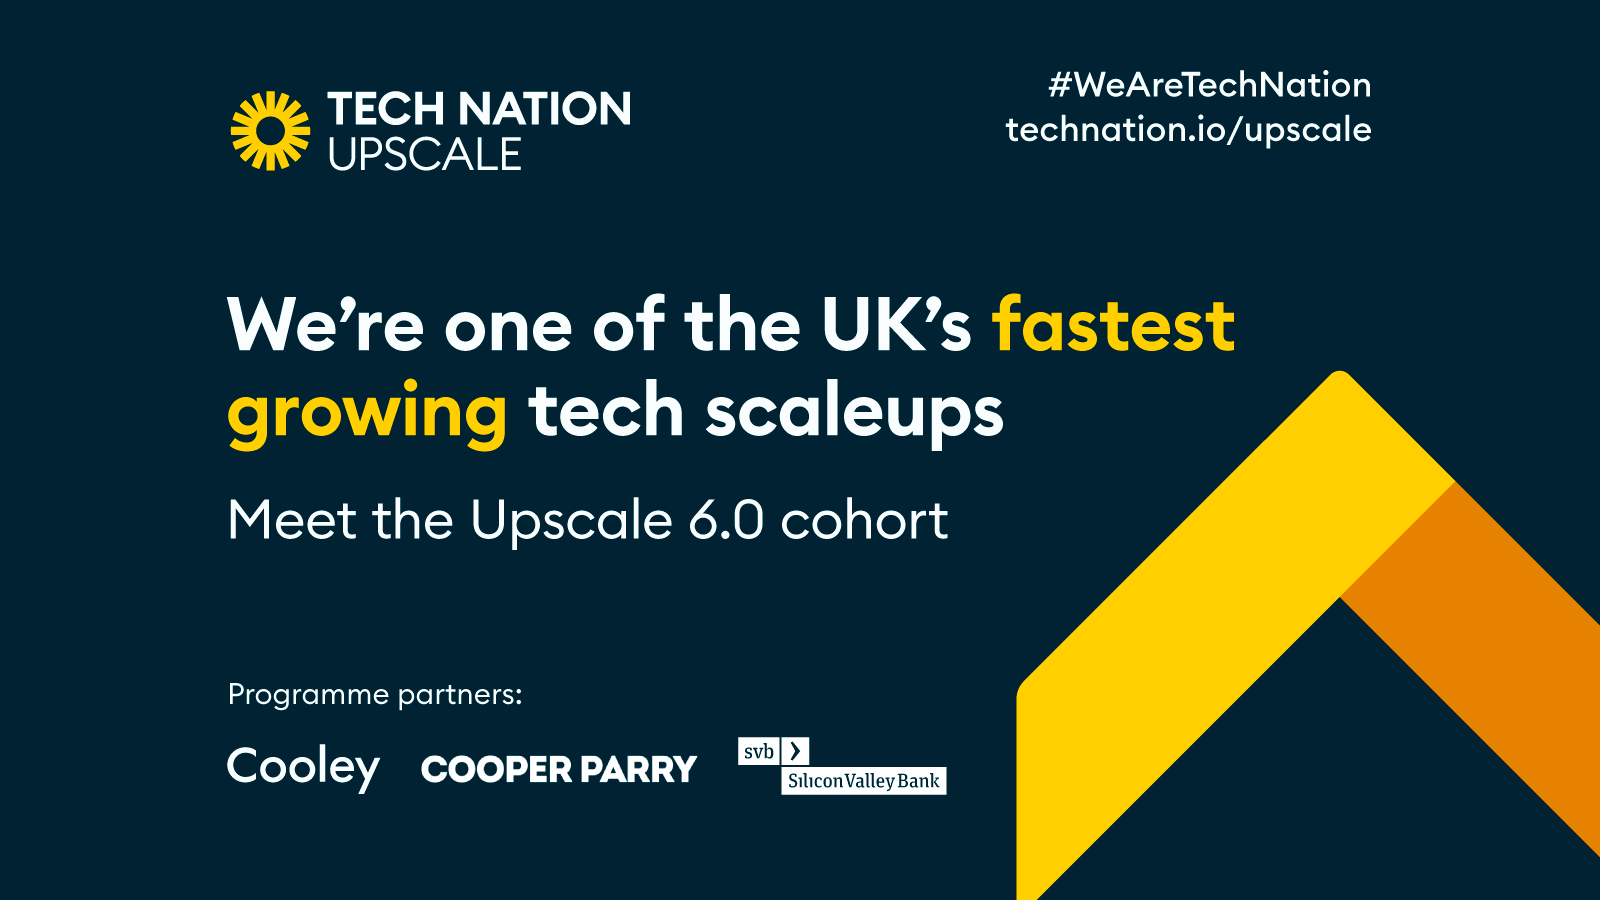 Tech Nation Upscale announcement reading 'We're one of the UK's fastest growing tech scaleups'